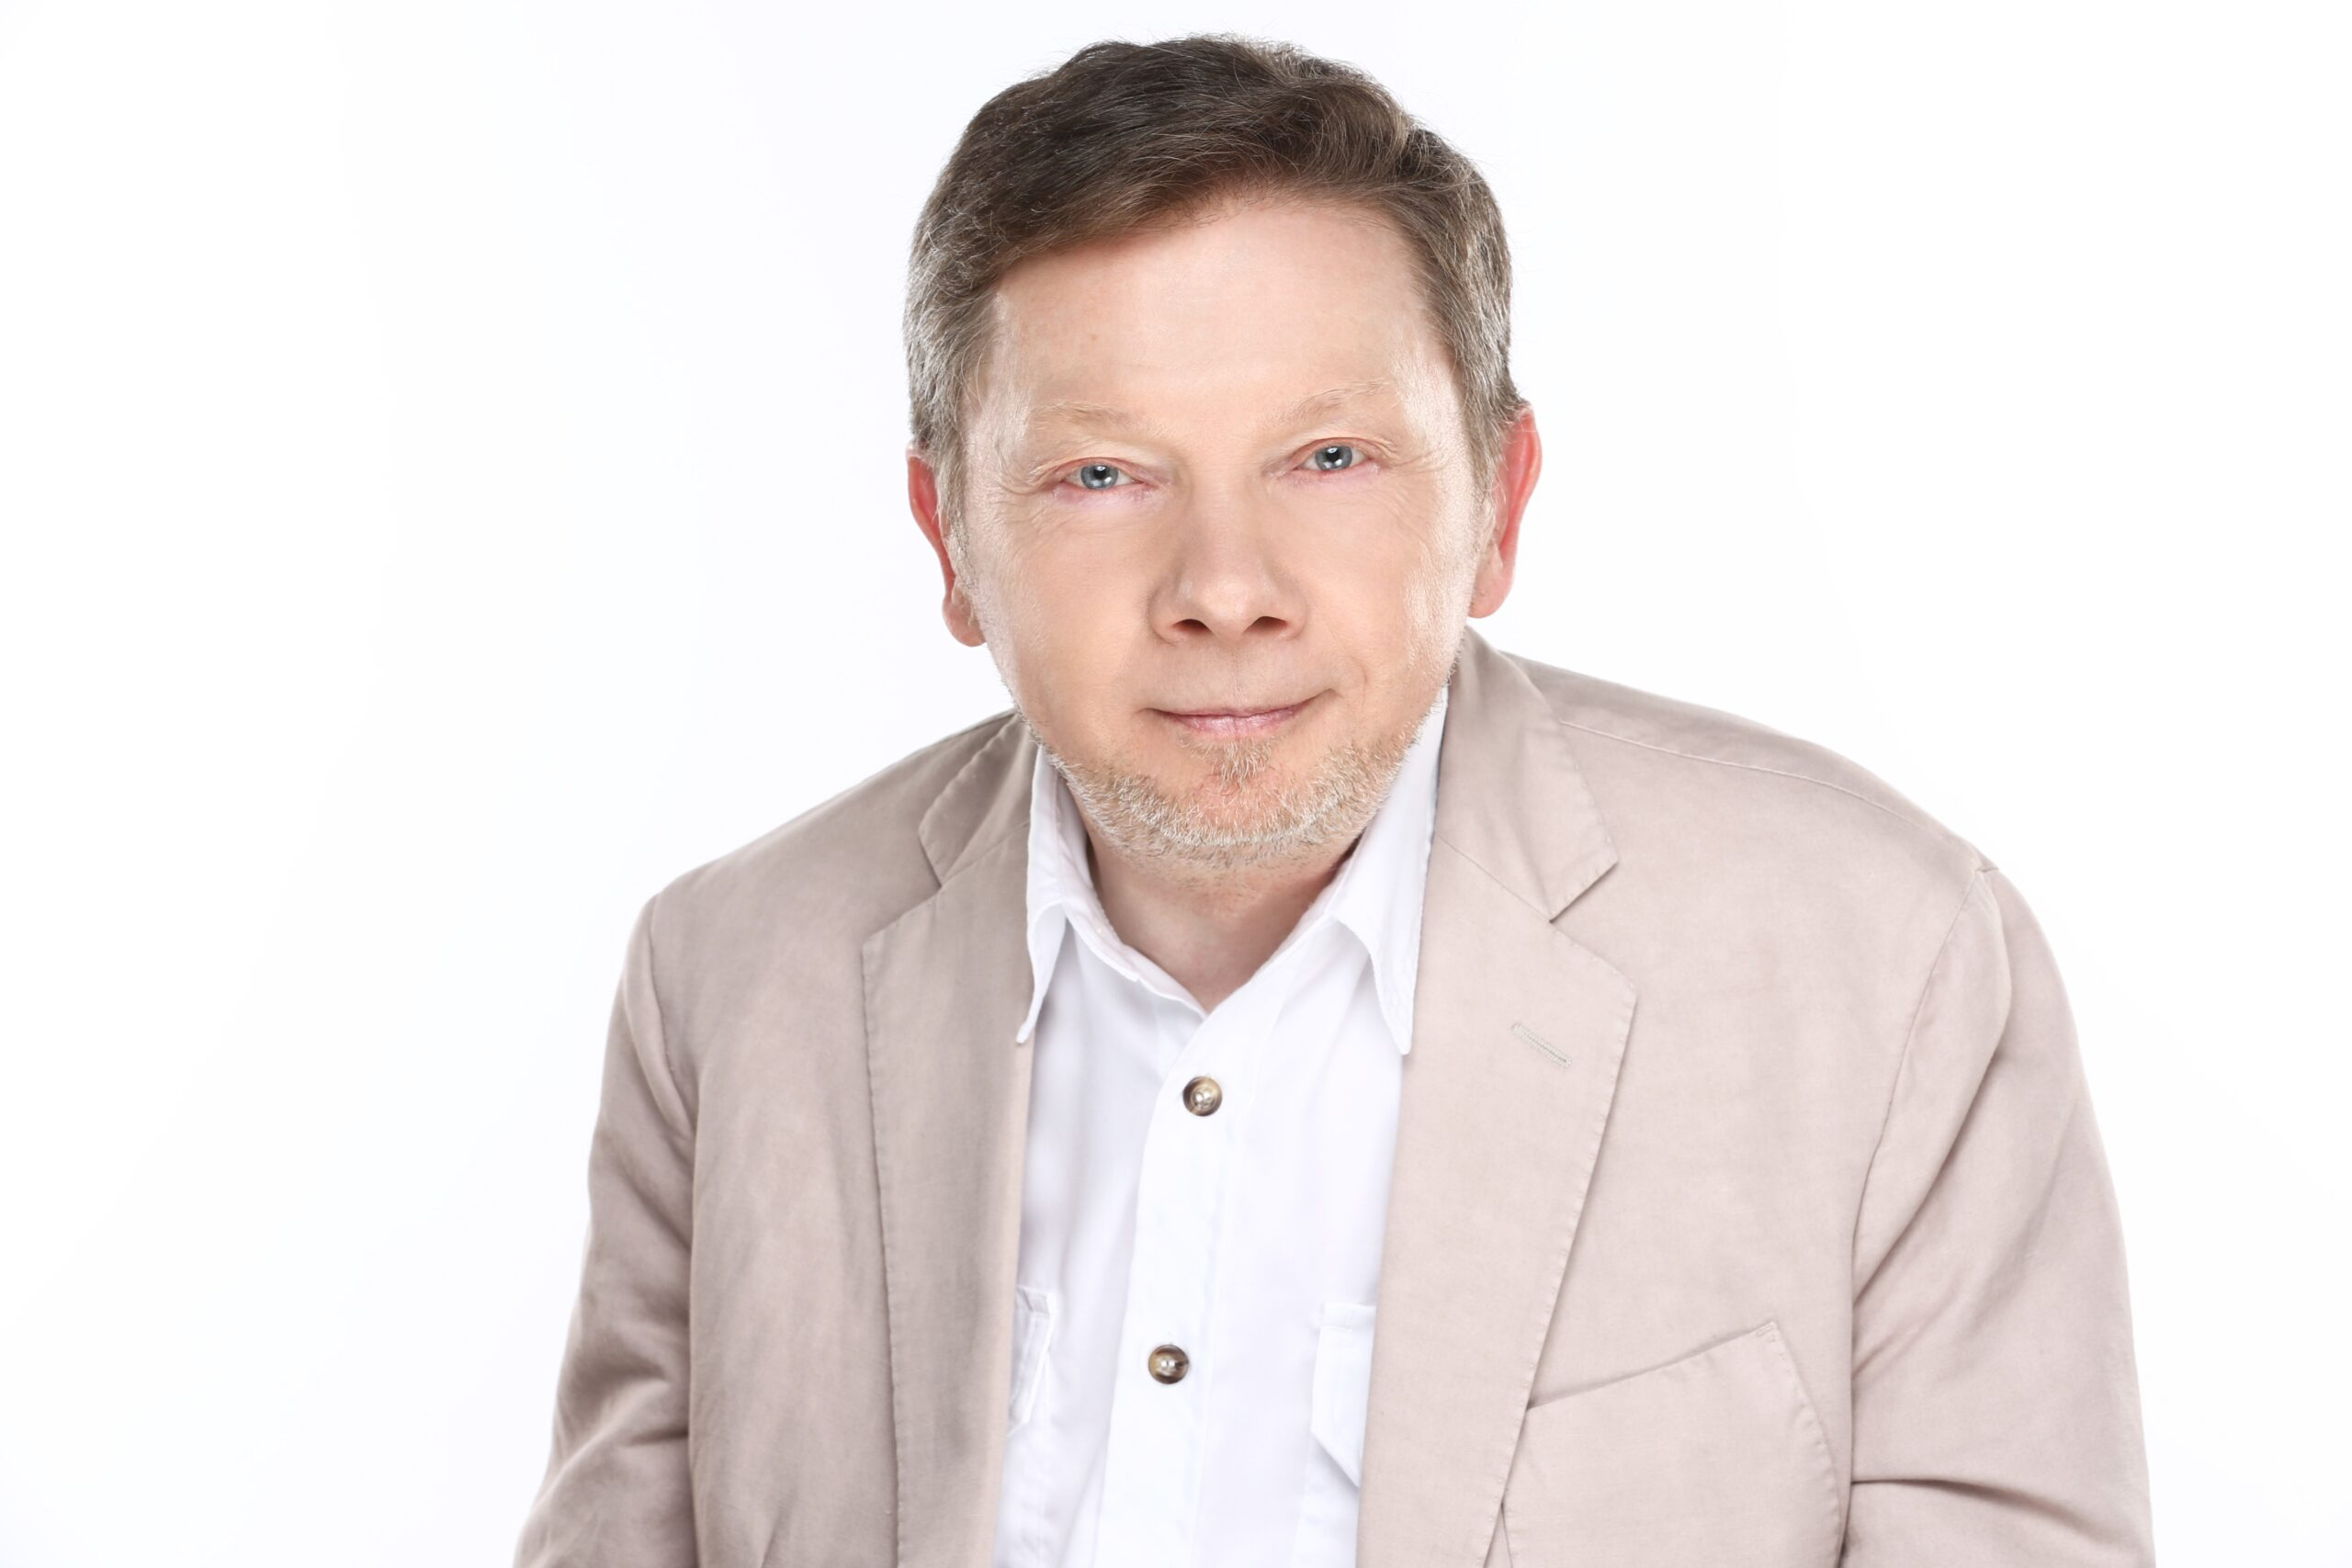 Who is eckhart tolle